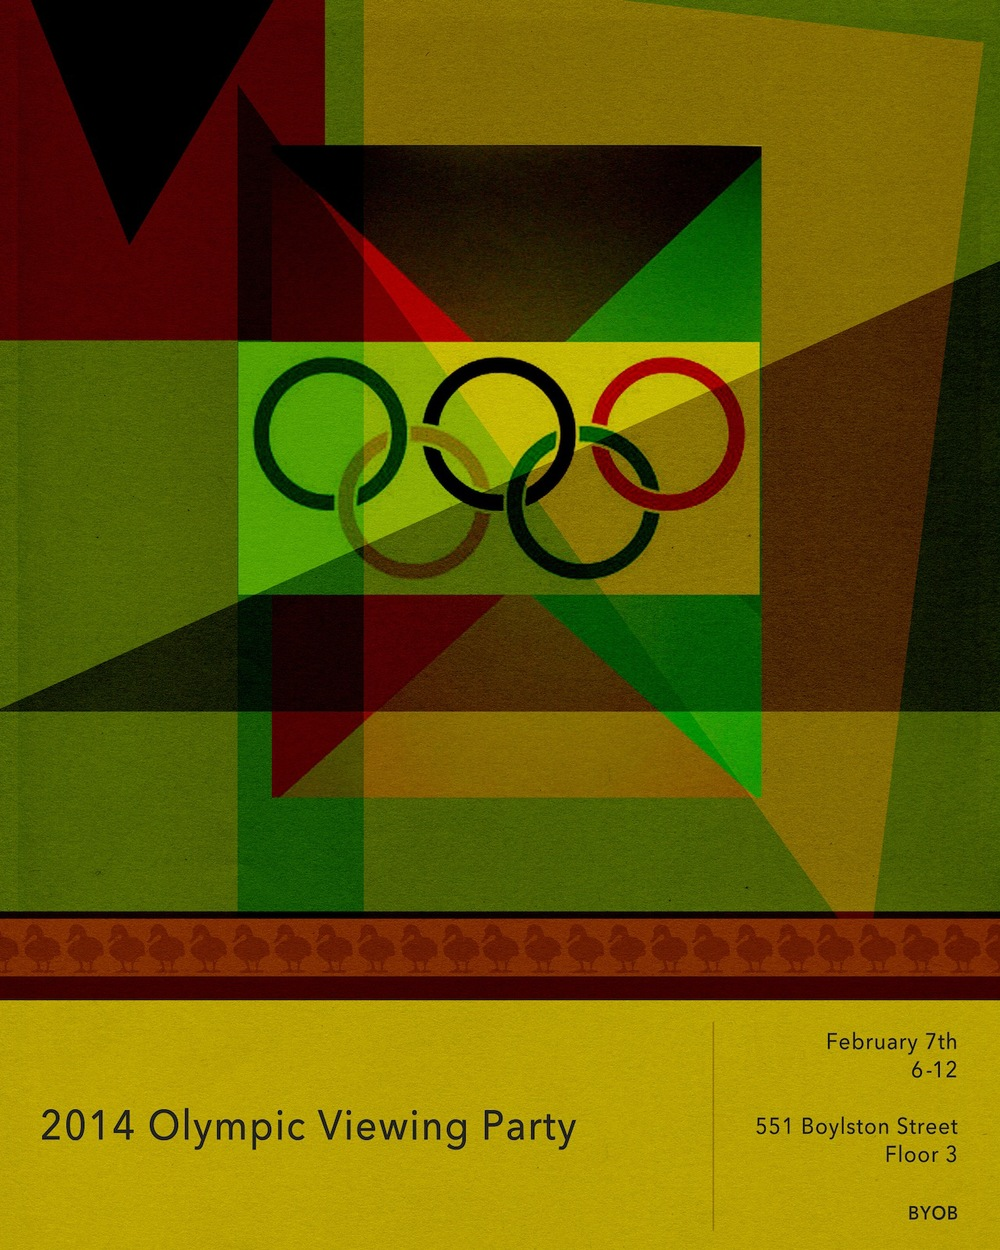 Olympic Party Invite_020514_SMALL.jpg